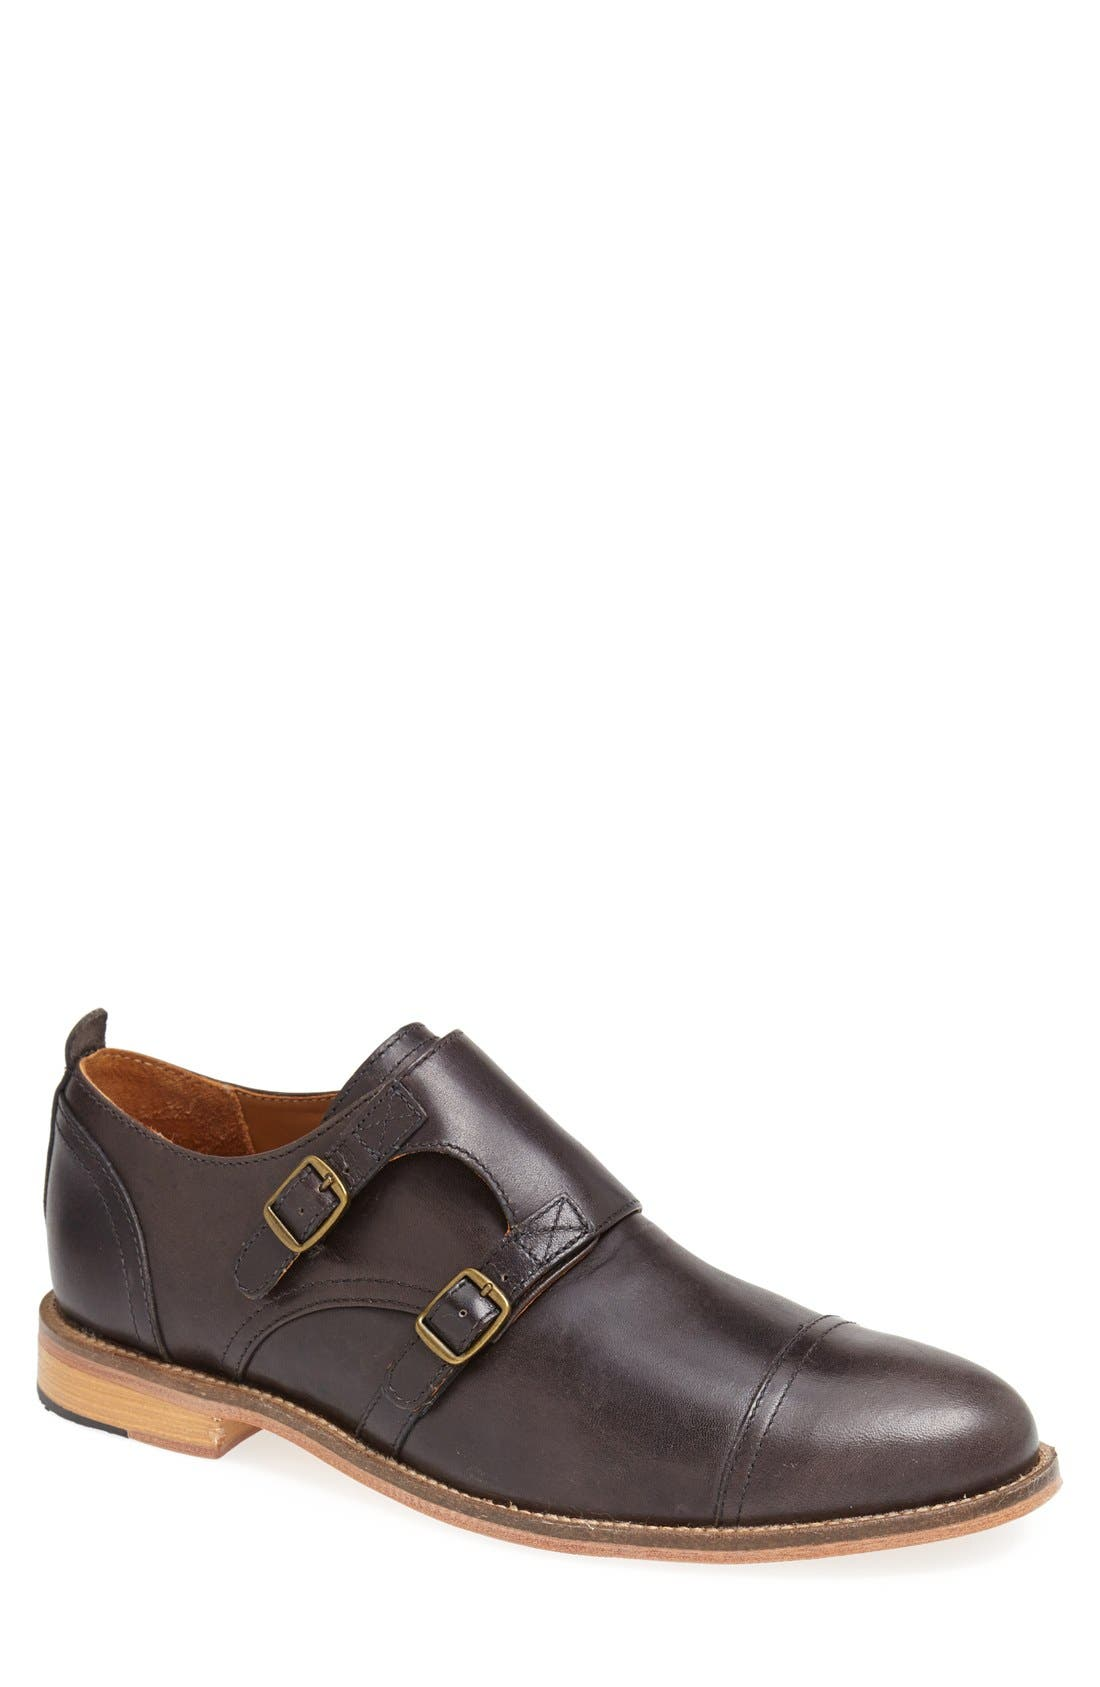 'Troop' Double Monk Slip-On,                         Main,                         color, 001